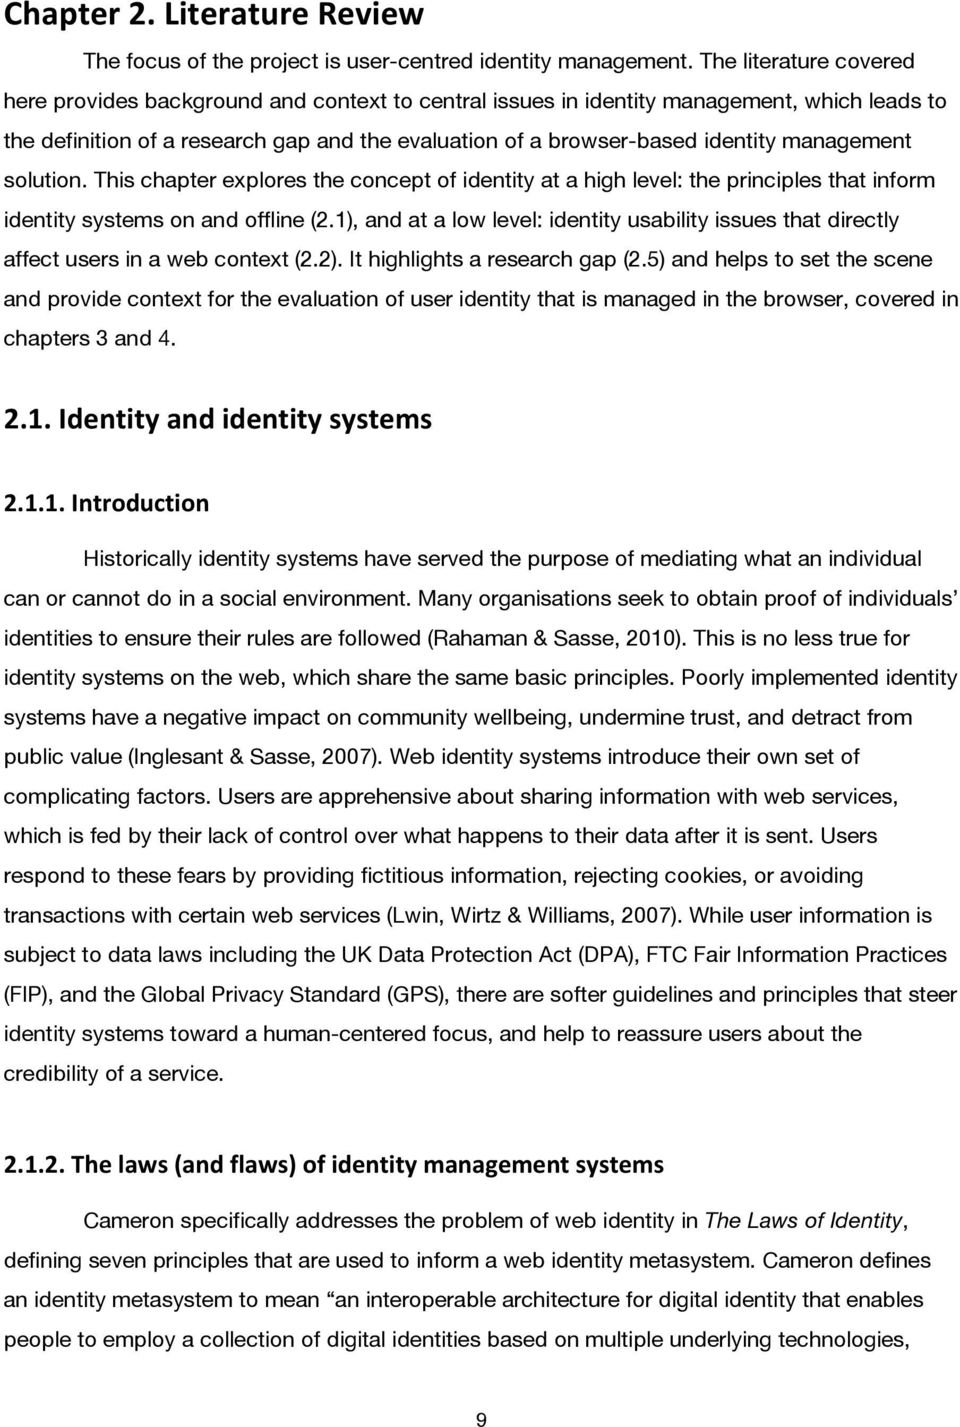 management solution. This chapter explores the concept of identity at a high level: the principles that inform identity systems on and offline (2.